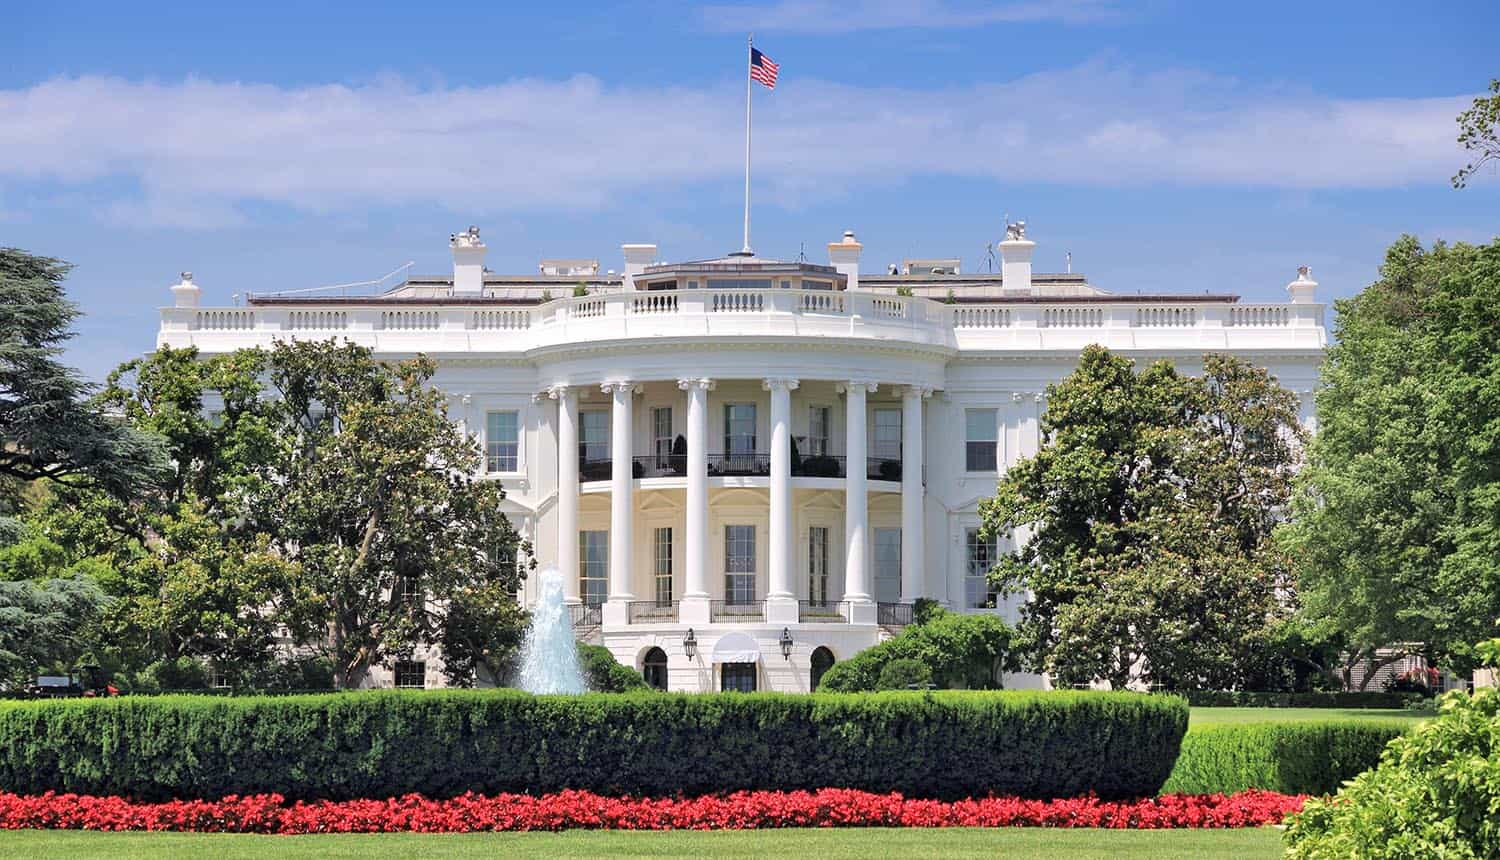 White House in Washington D.C. showing cybersecurity summit on national security